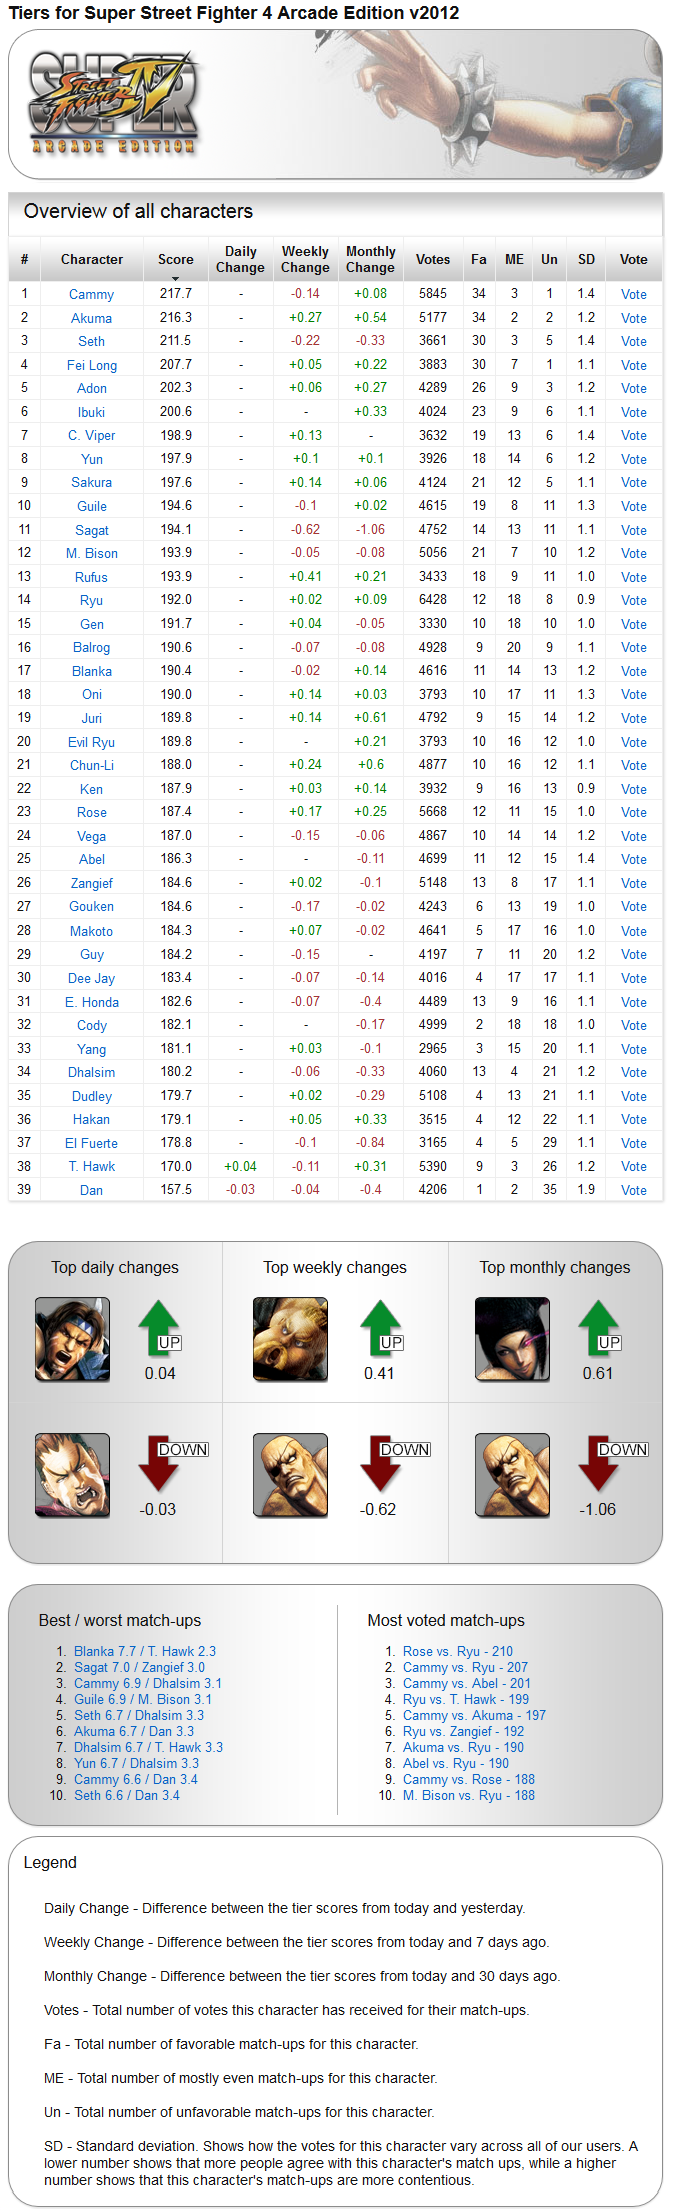 Archived tiers for Super Street Fighter 4 Arcade Edition v2012 - Tiers Screenshot -June 2nd, 2014